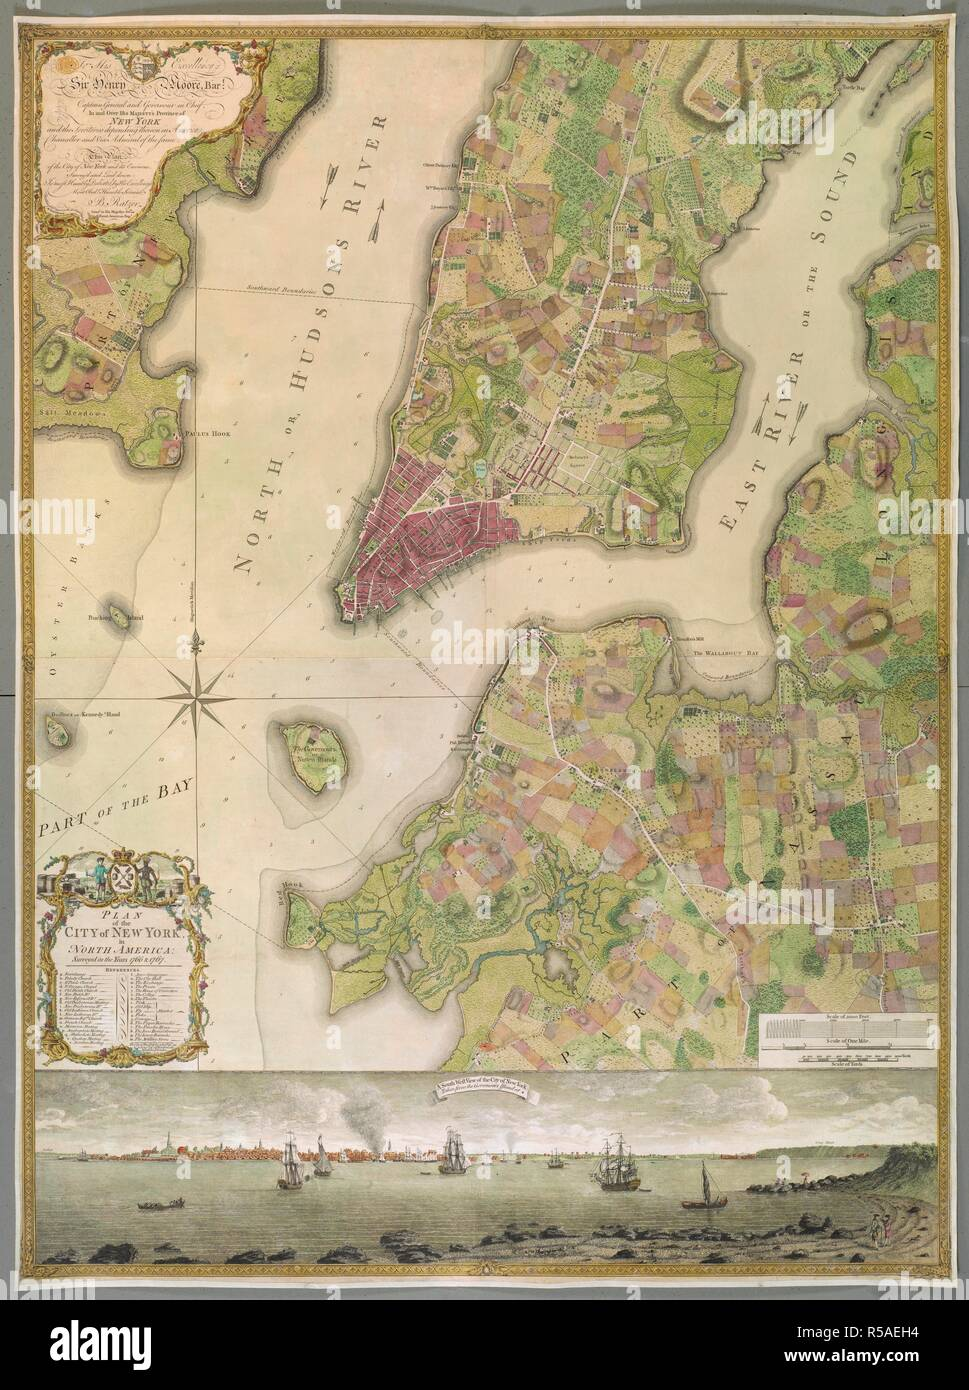 An 18th century plan of the city of New York. PLAN of the CITY of NEW YORK, in North America : Surveyed in the Years 1766 & 1767 / B. Ratzer, Lieut.t in His Majestys 60th or Royal American Reg.t. [London] : [Thomas Kitchin], [about 1770.]. 1 map on 3 sheets : joined and laid on linen, copperplate engraving with original hand colour ; map 118 x 86 cm; Scale approximately 1:1000. Source: Maps K.Top.121.36.b. Author: Ratzer, Bernard. - Stock Image